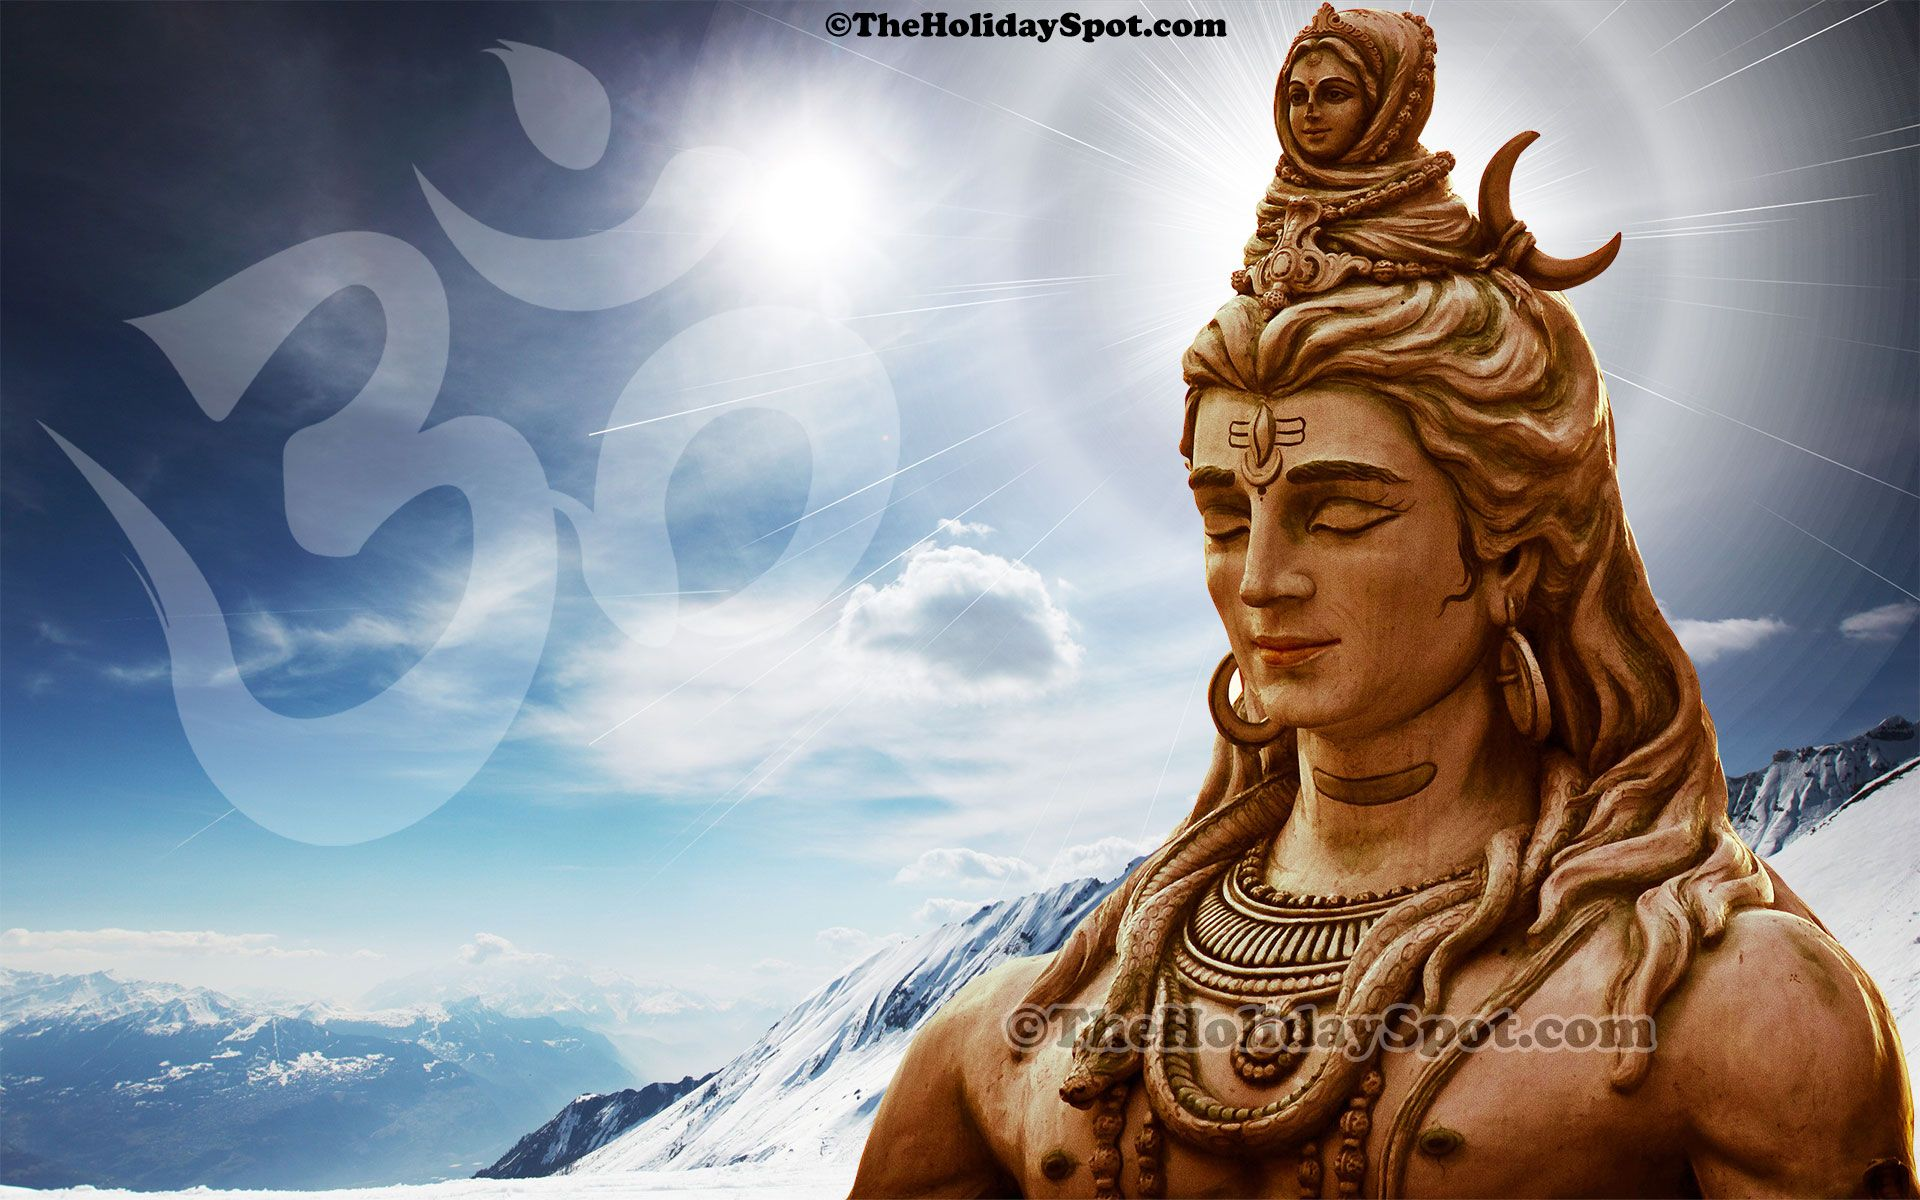 Shiva Wallpaper In Hd: Lord Shiva Hd Wallpapers For Laptop Of Lord Shiva